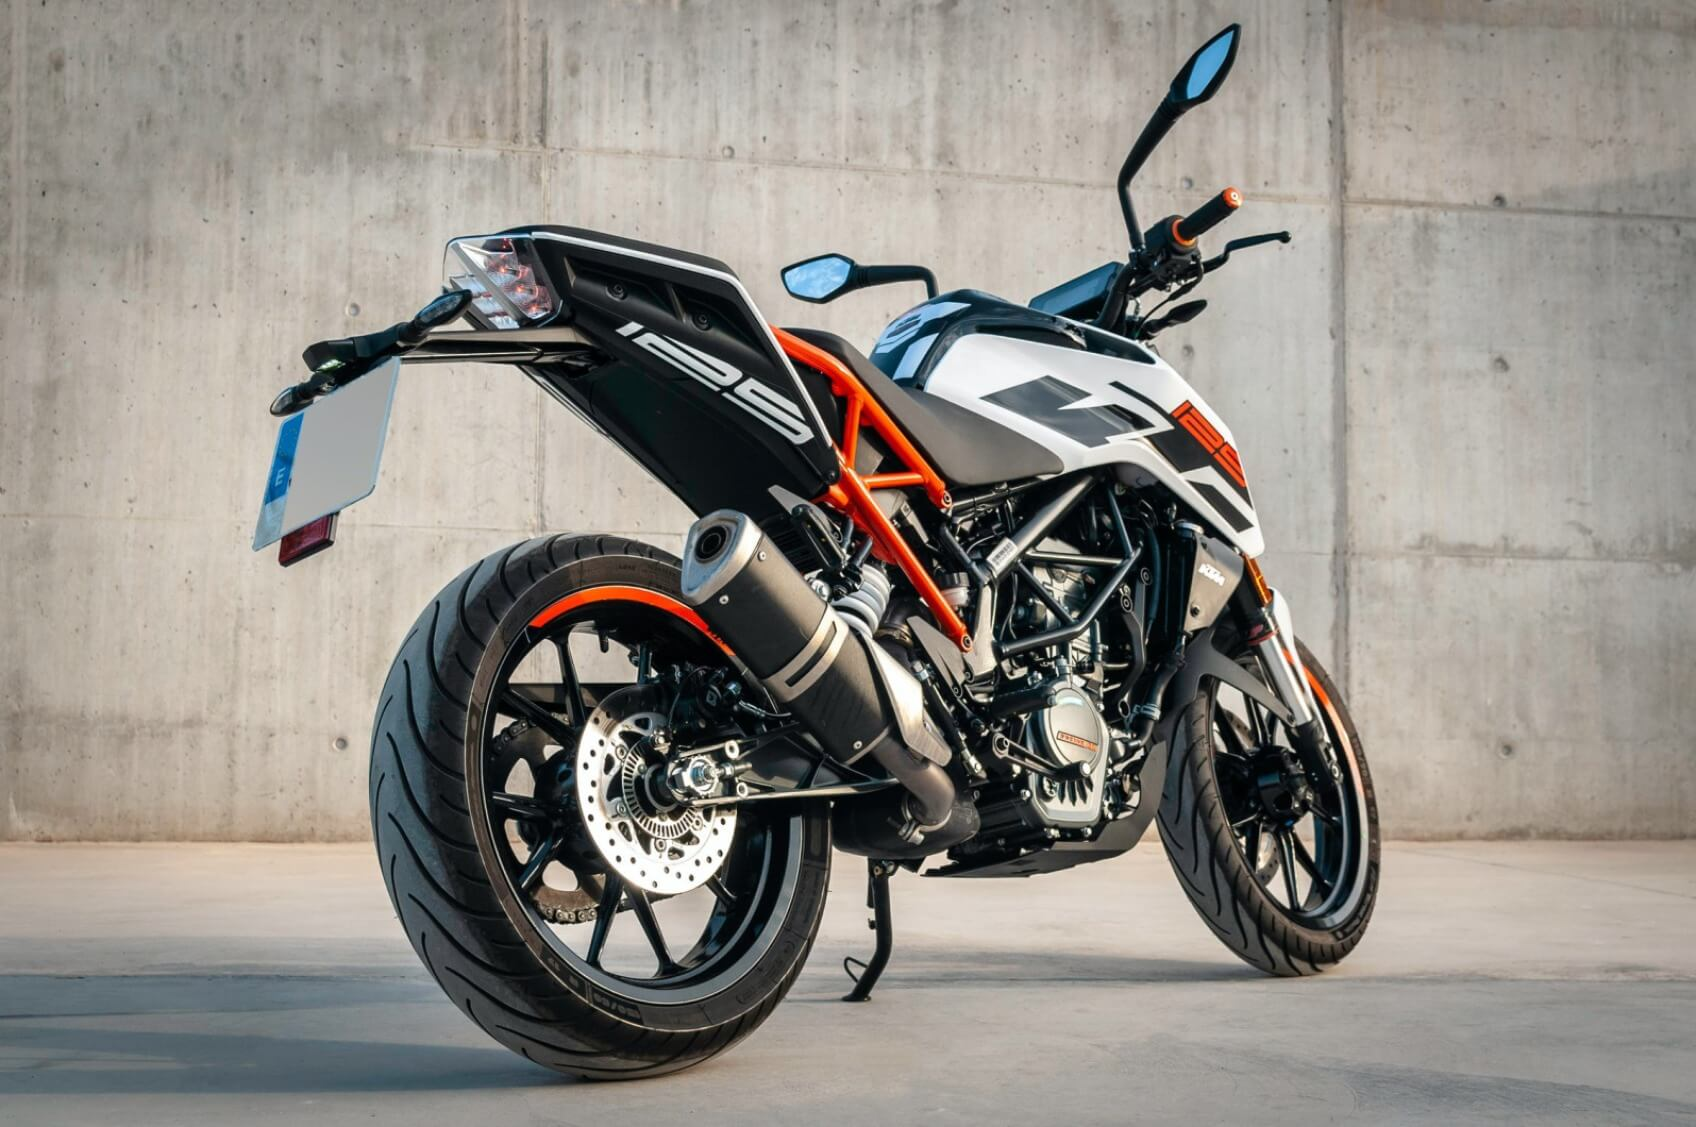 KTM Duke Motorcycle - Original image